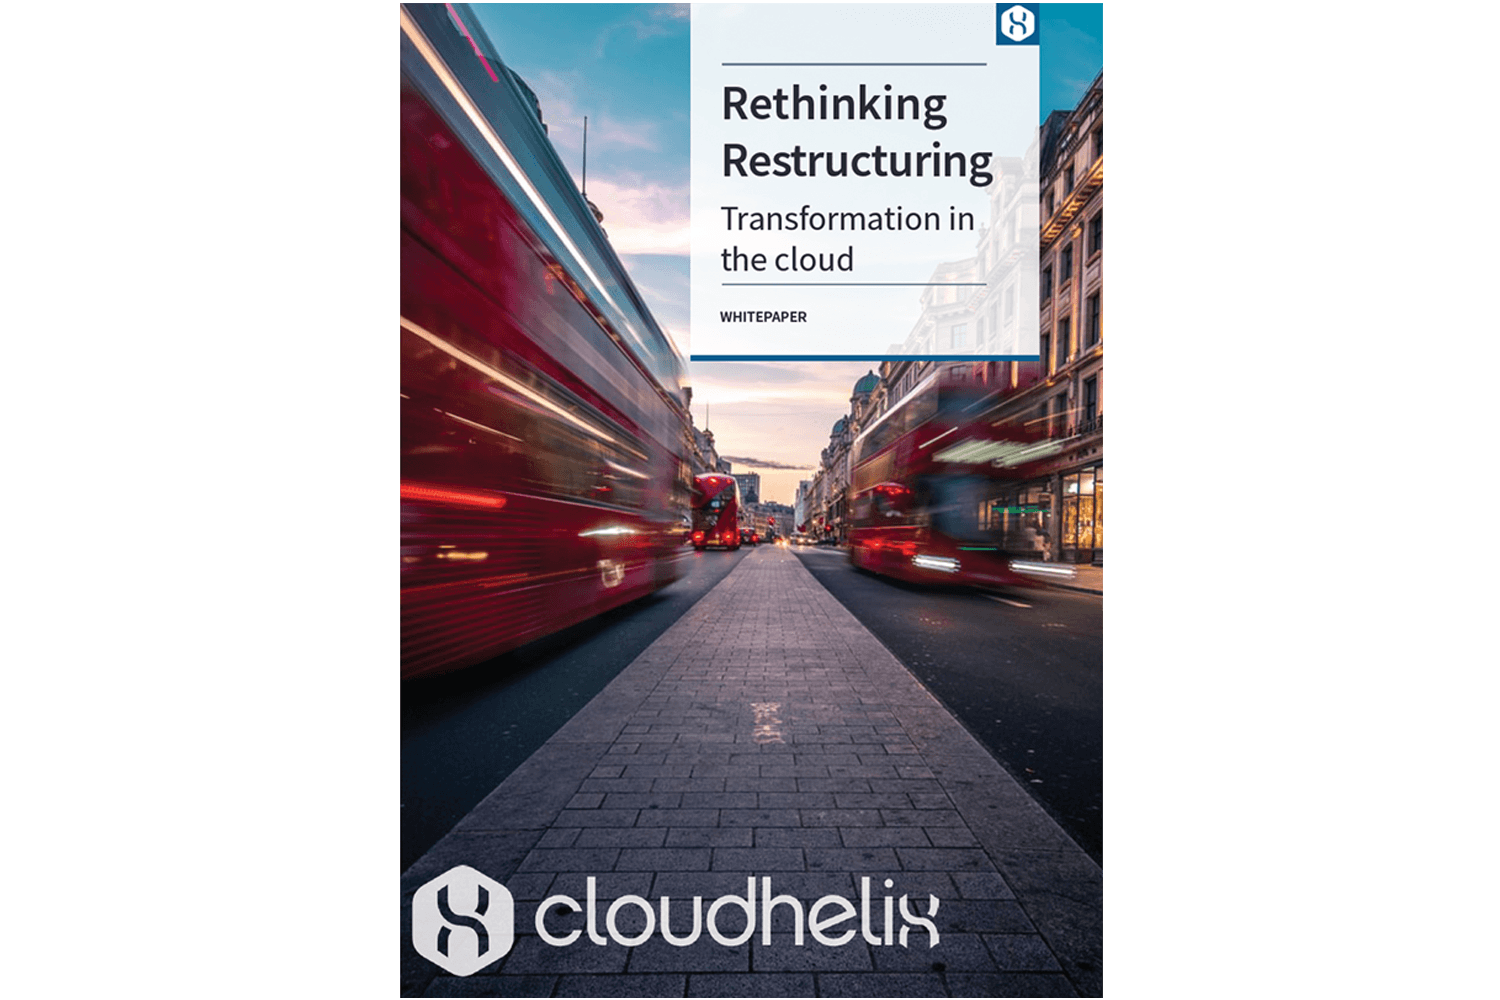 Insolvency Whitepaper: Rethinking Restructuring